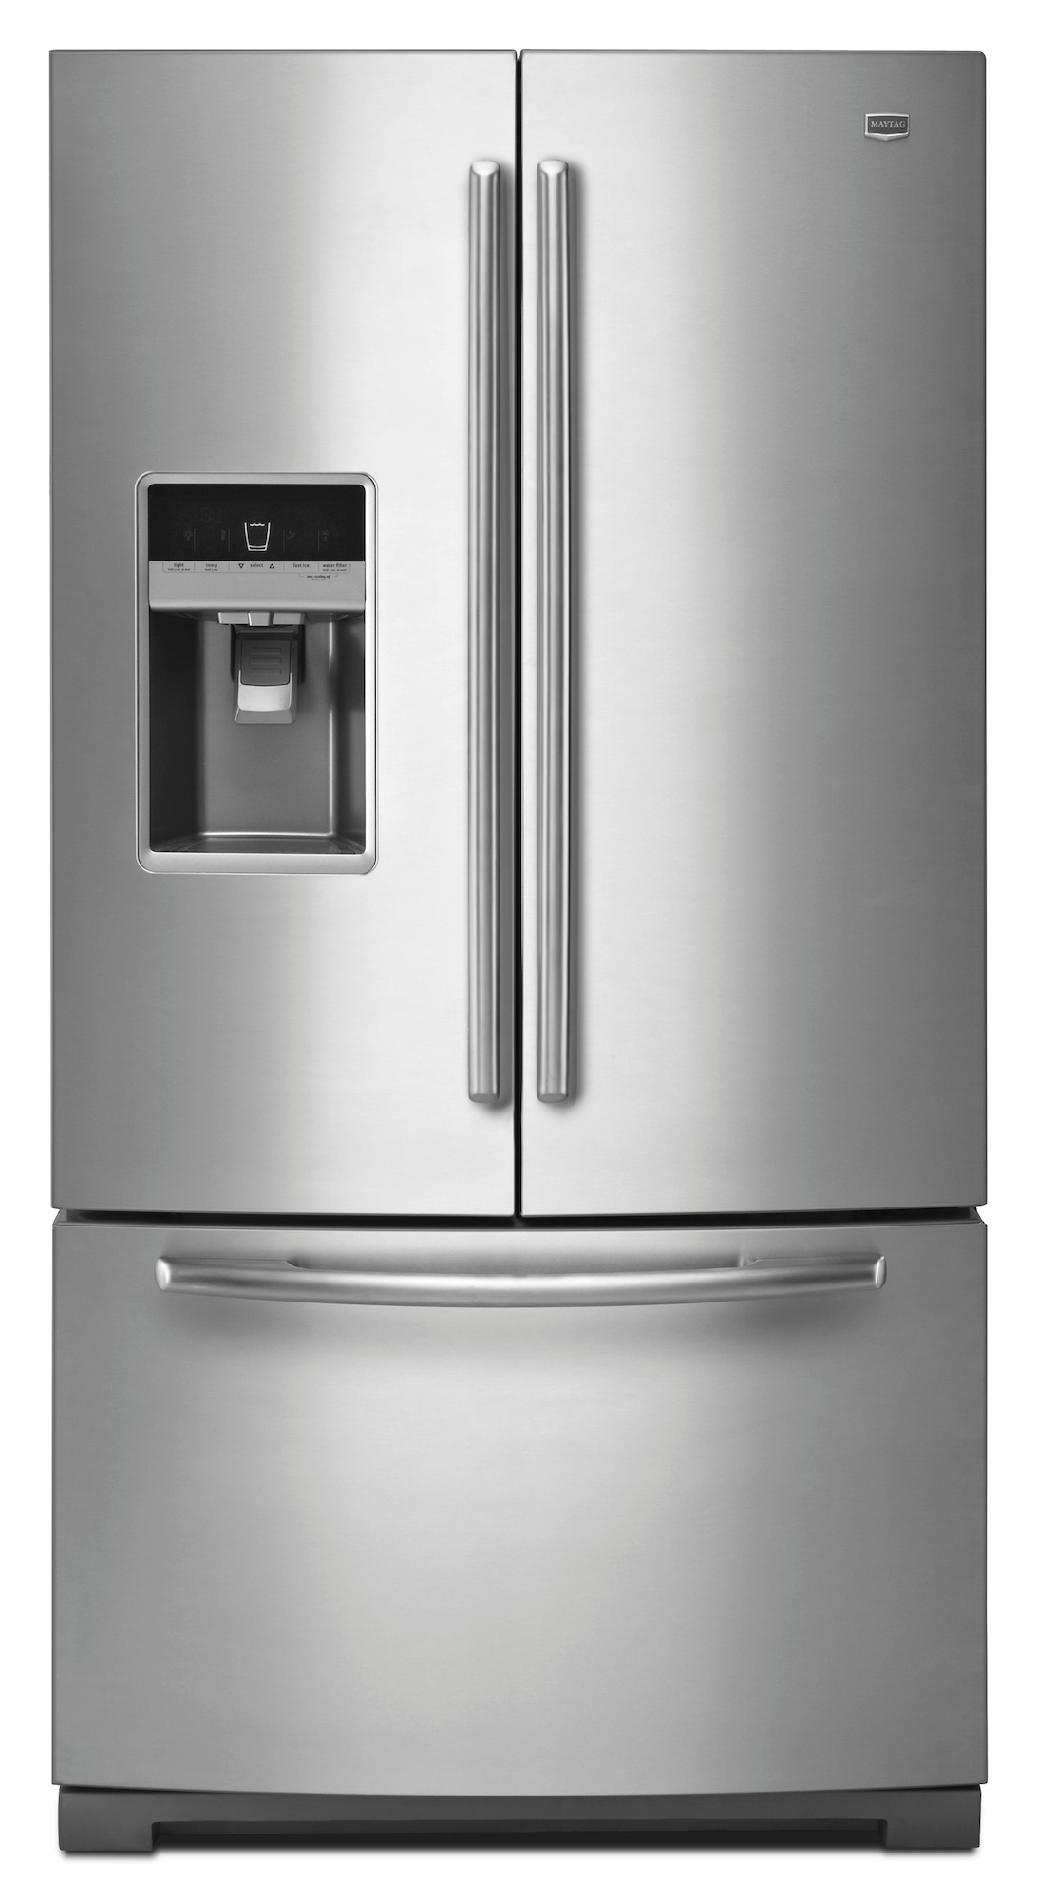 26.1 cu. ft. French-Door Refrigerator w/ 2X Life Compressor - Stainless Steel